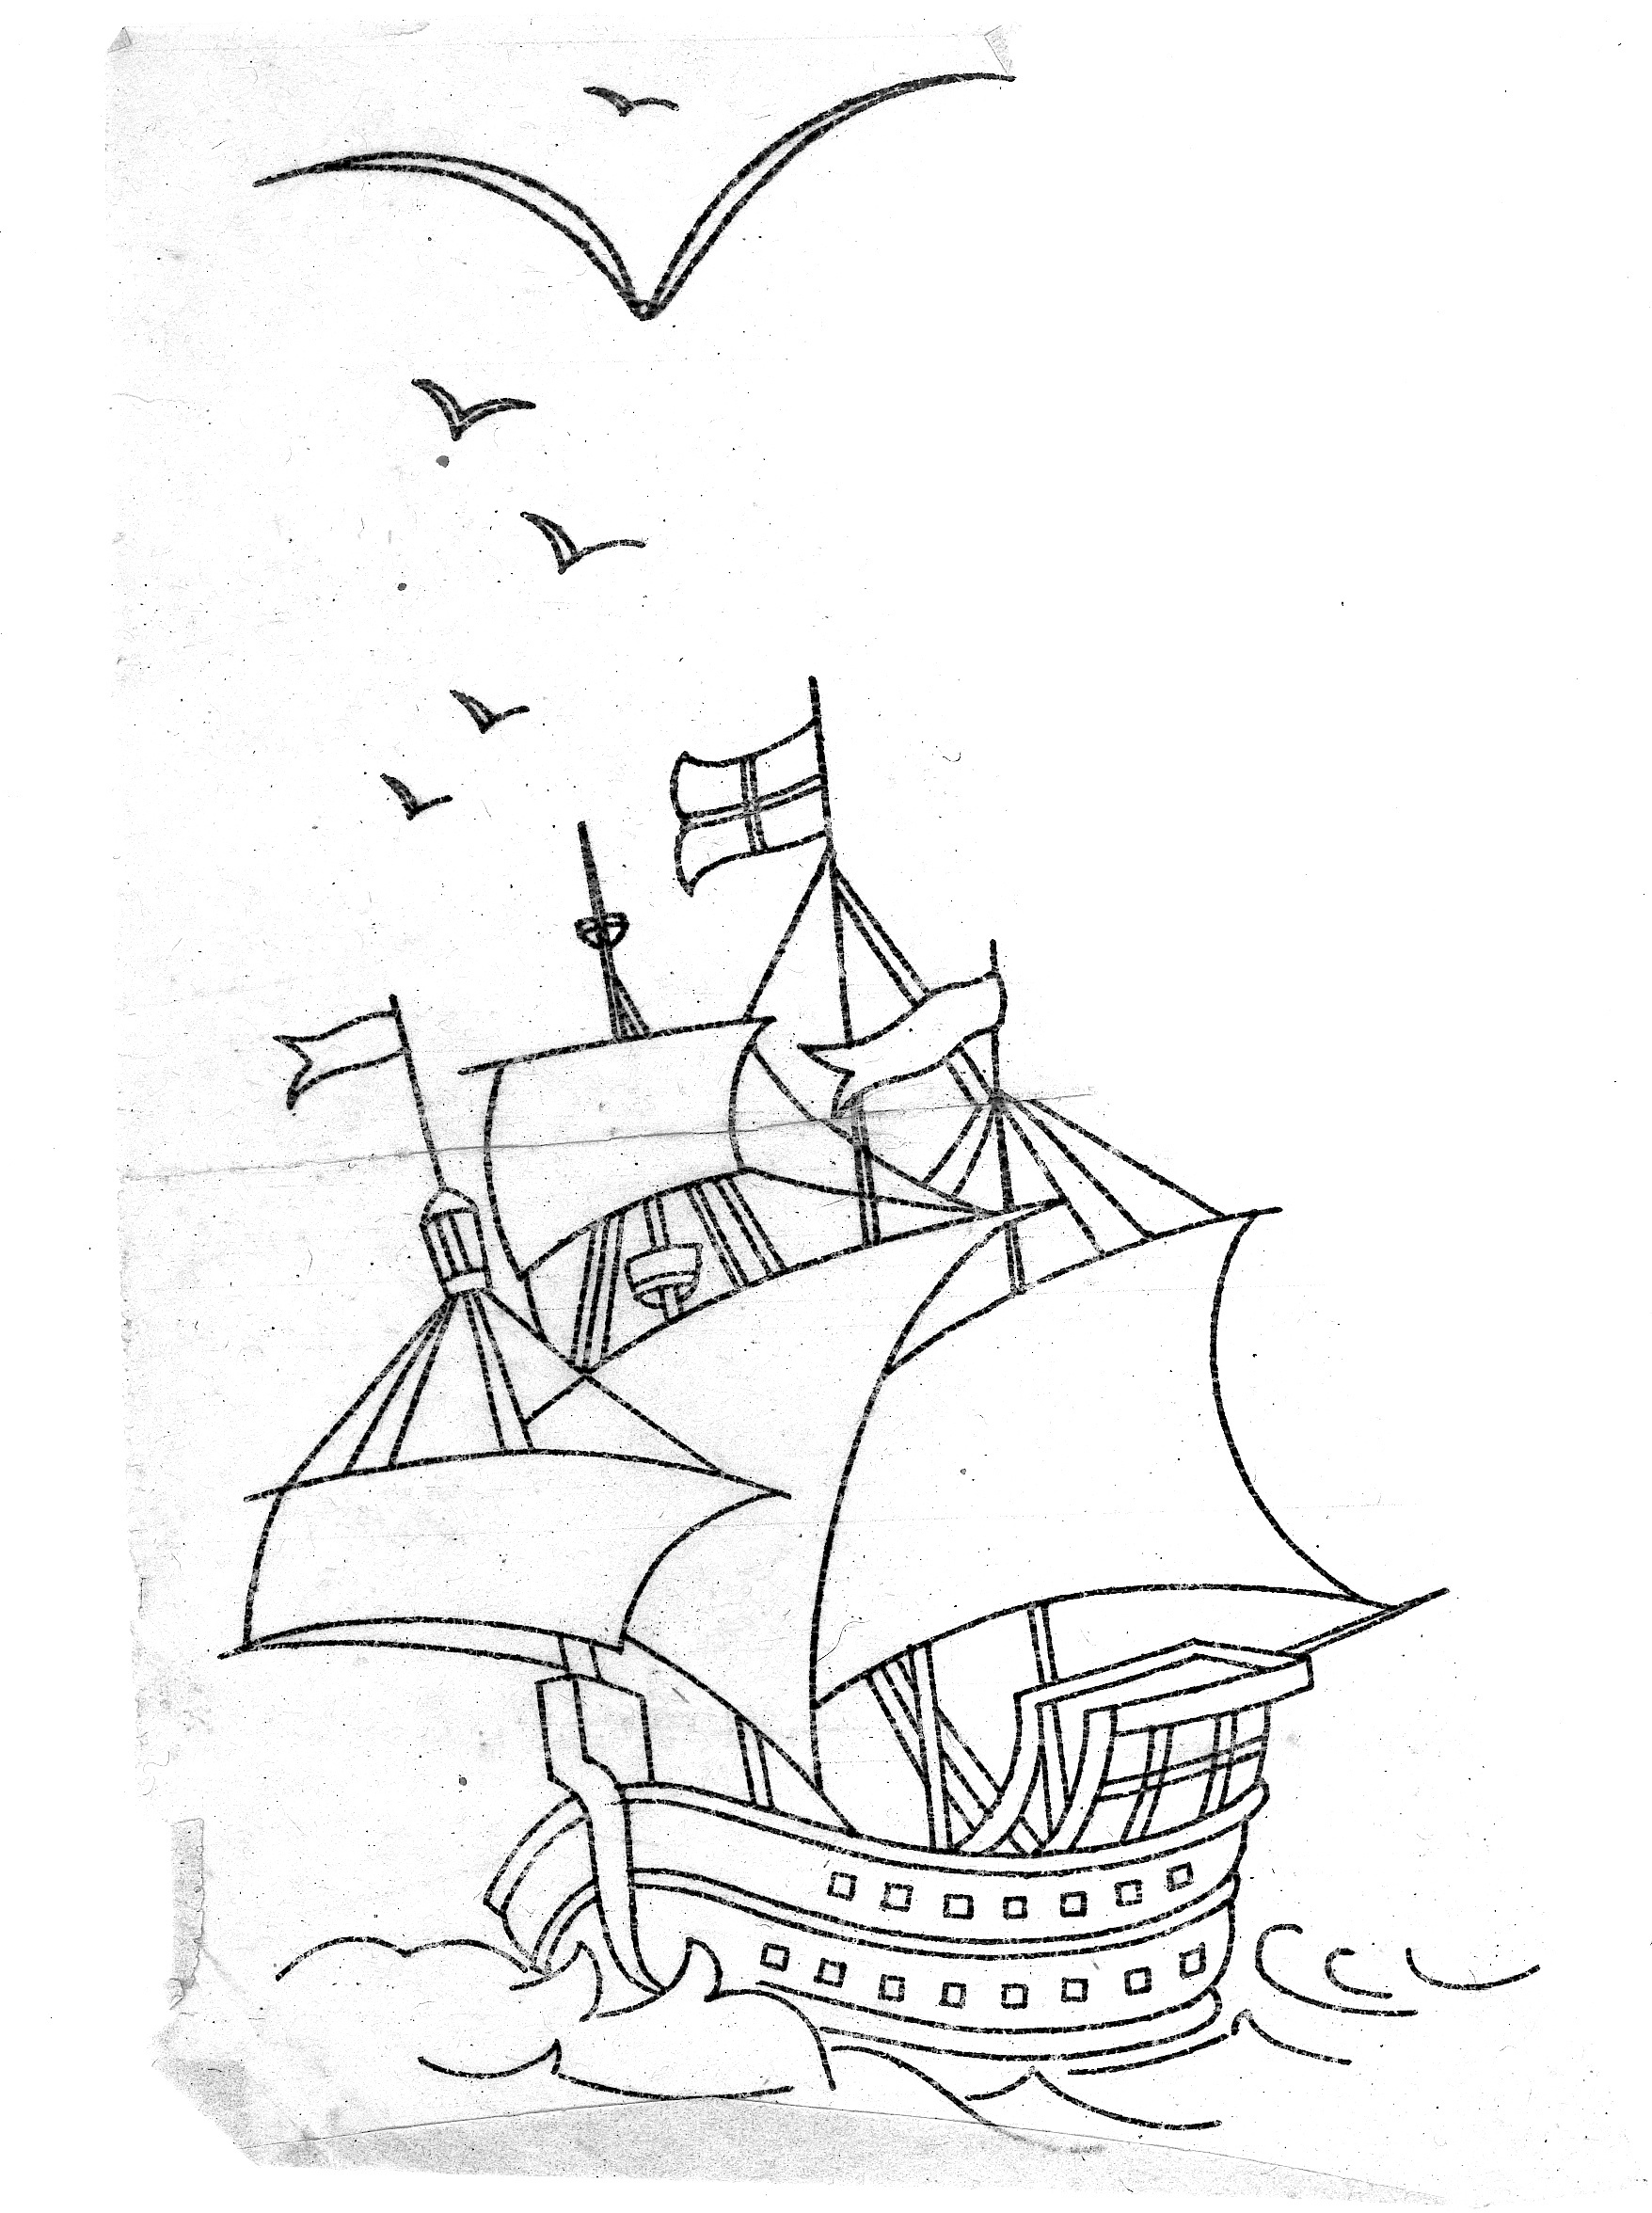 mayflower coloring pages - mayflower ship drawing at free for